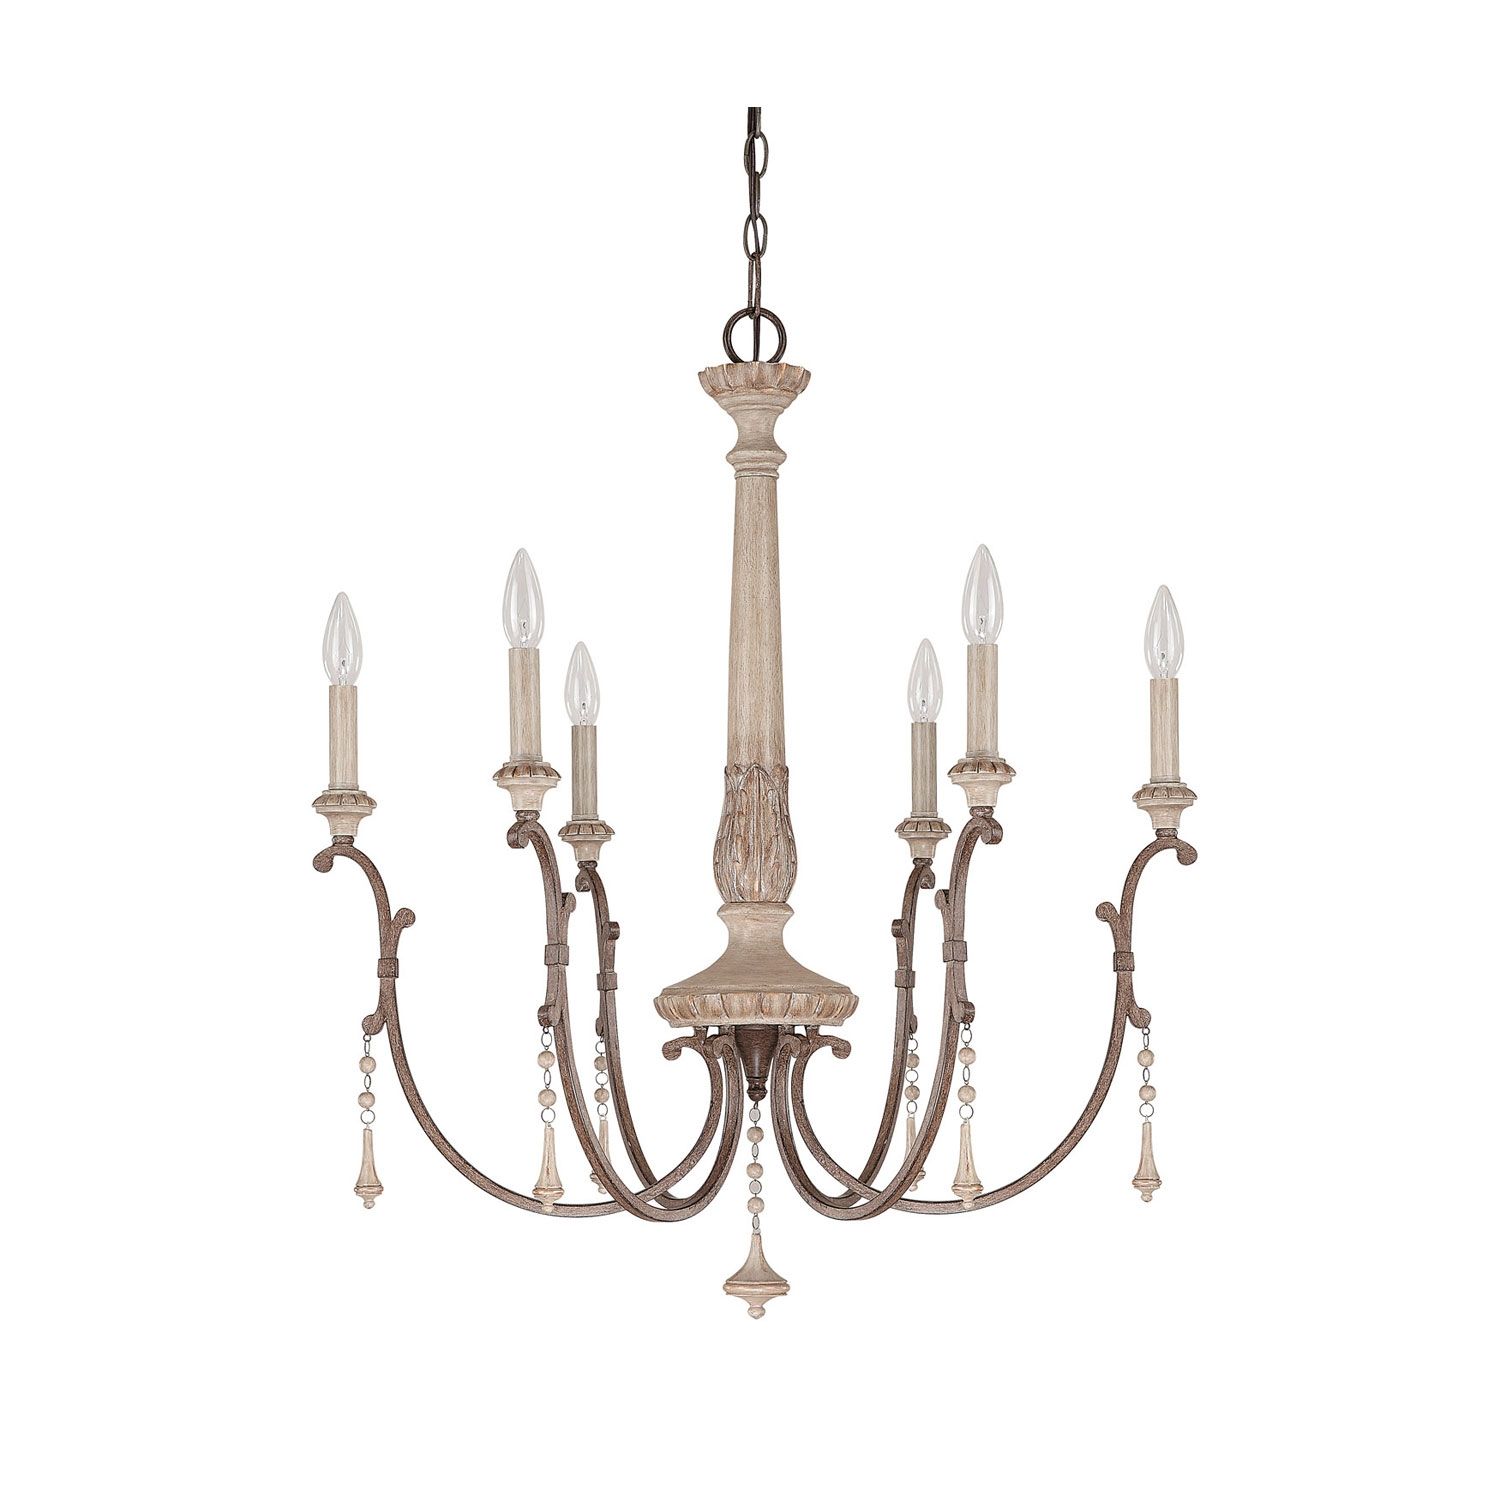 Chandelier Inspiring Country Chandeliers Country Farmhouse Pertaining To French Country Chandeliers (View 6 of 25)